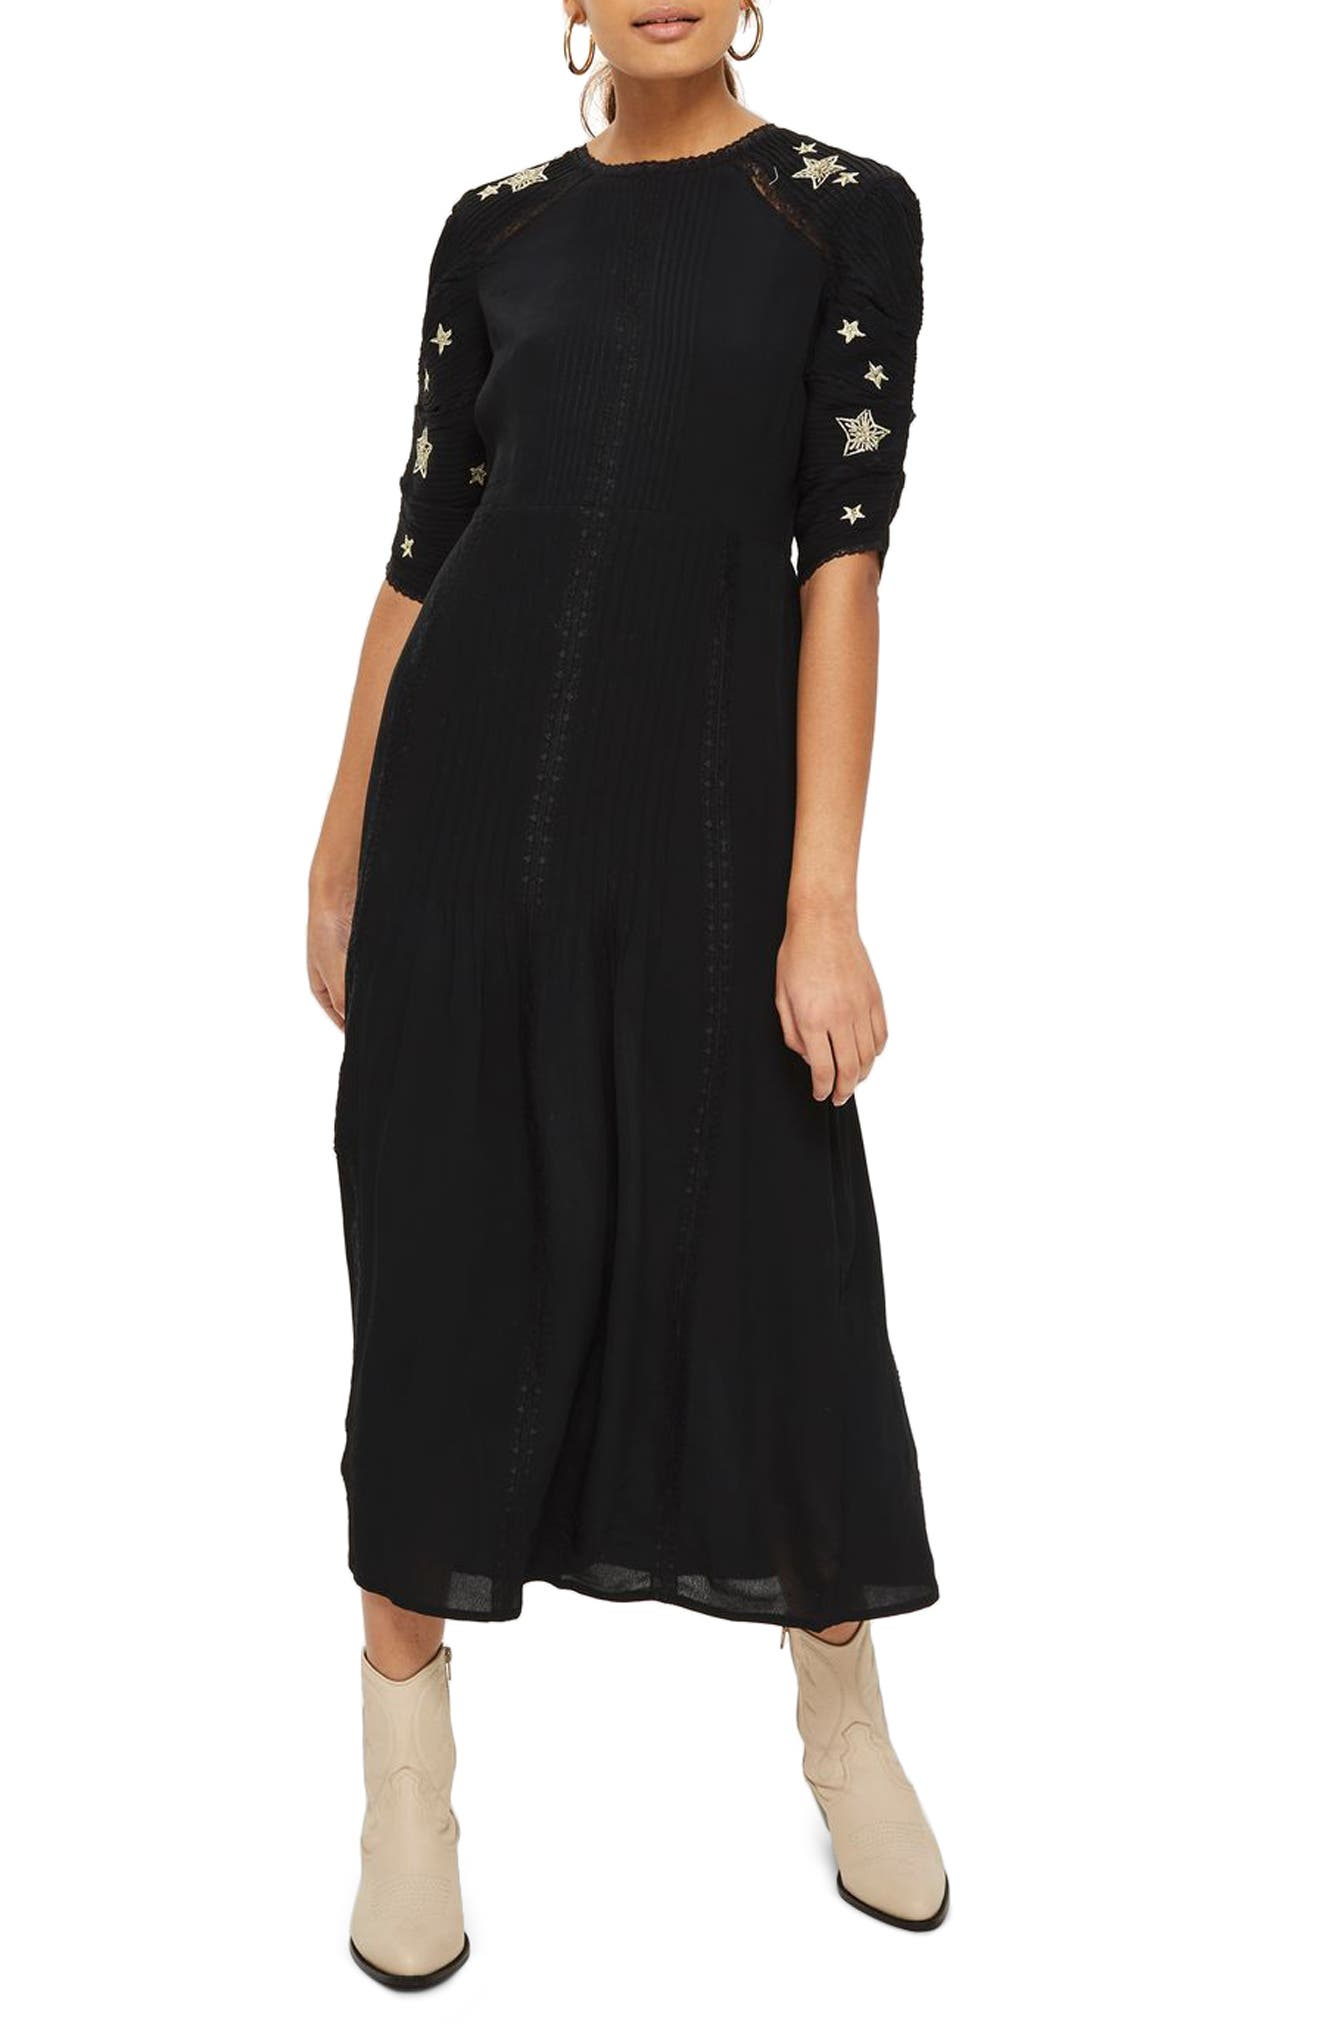 Alternate Image 1 Selected - Topshop Star Embroidered Midi Dress